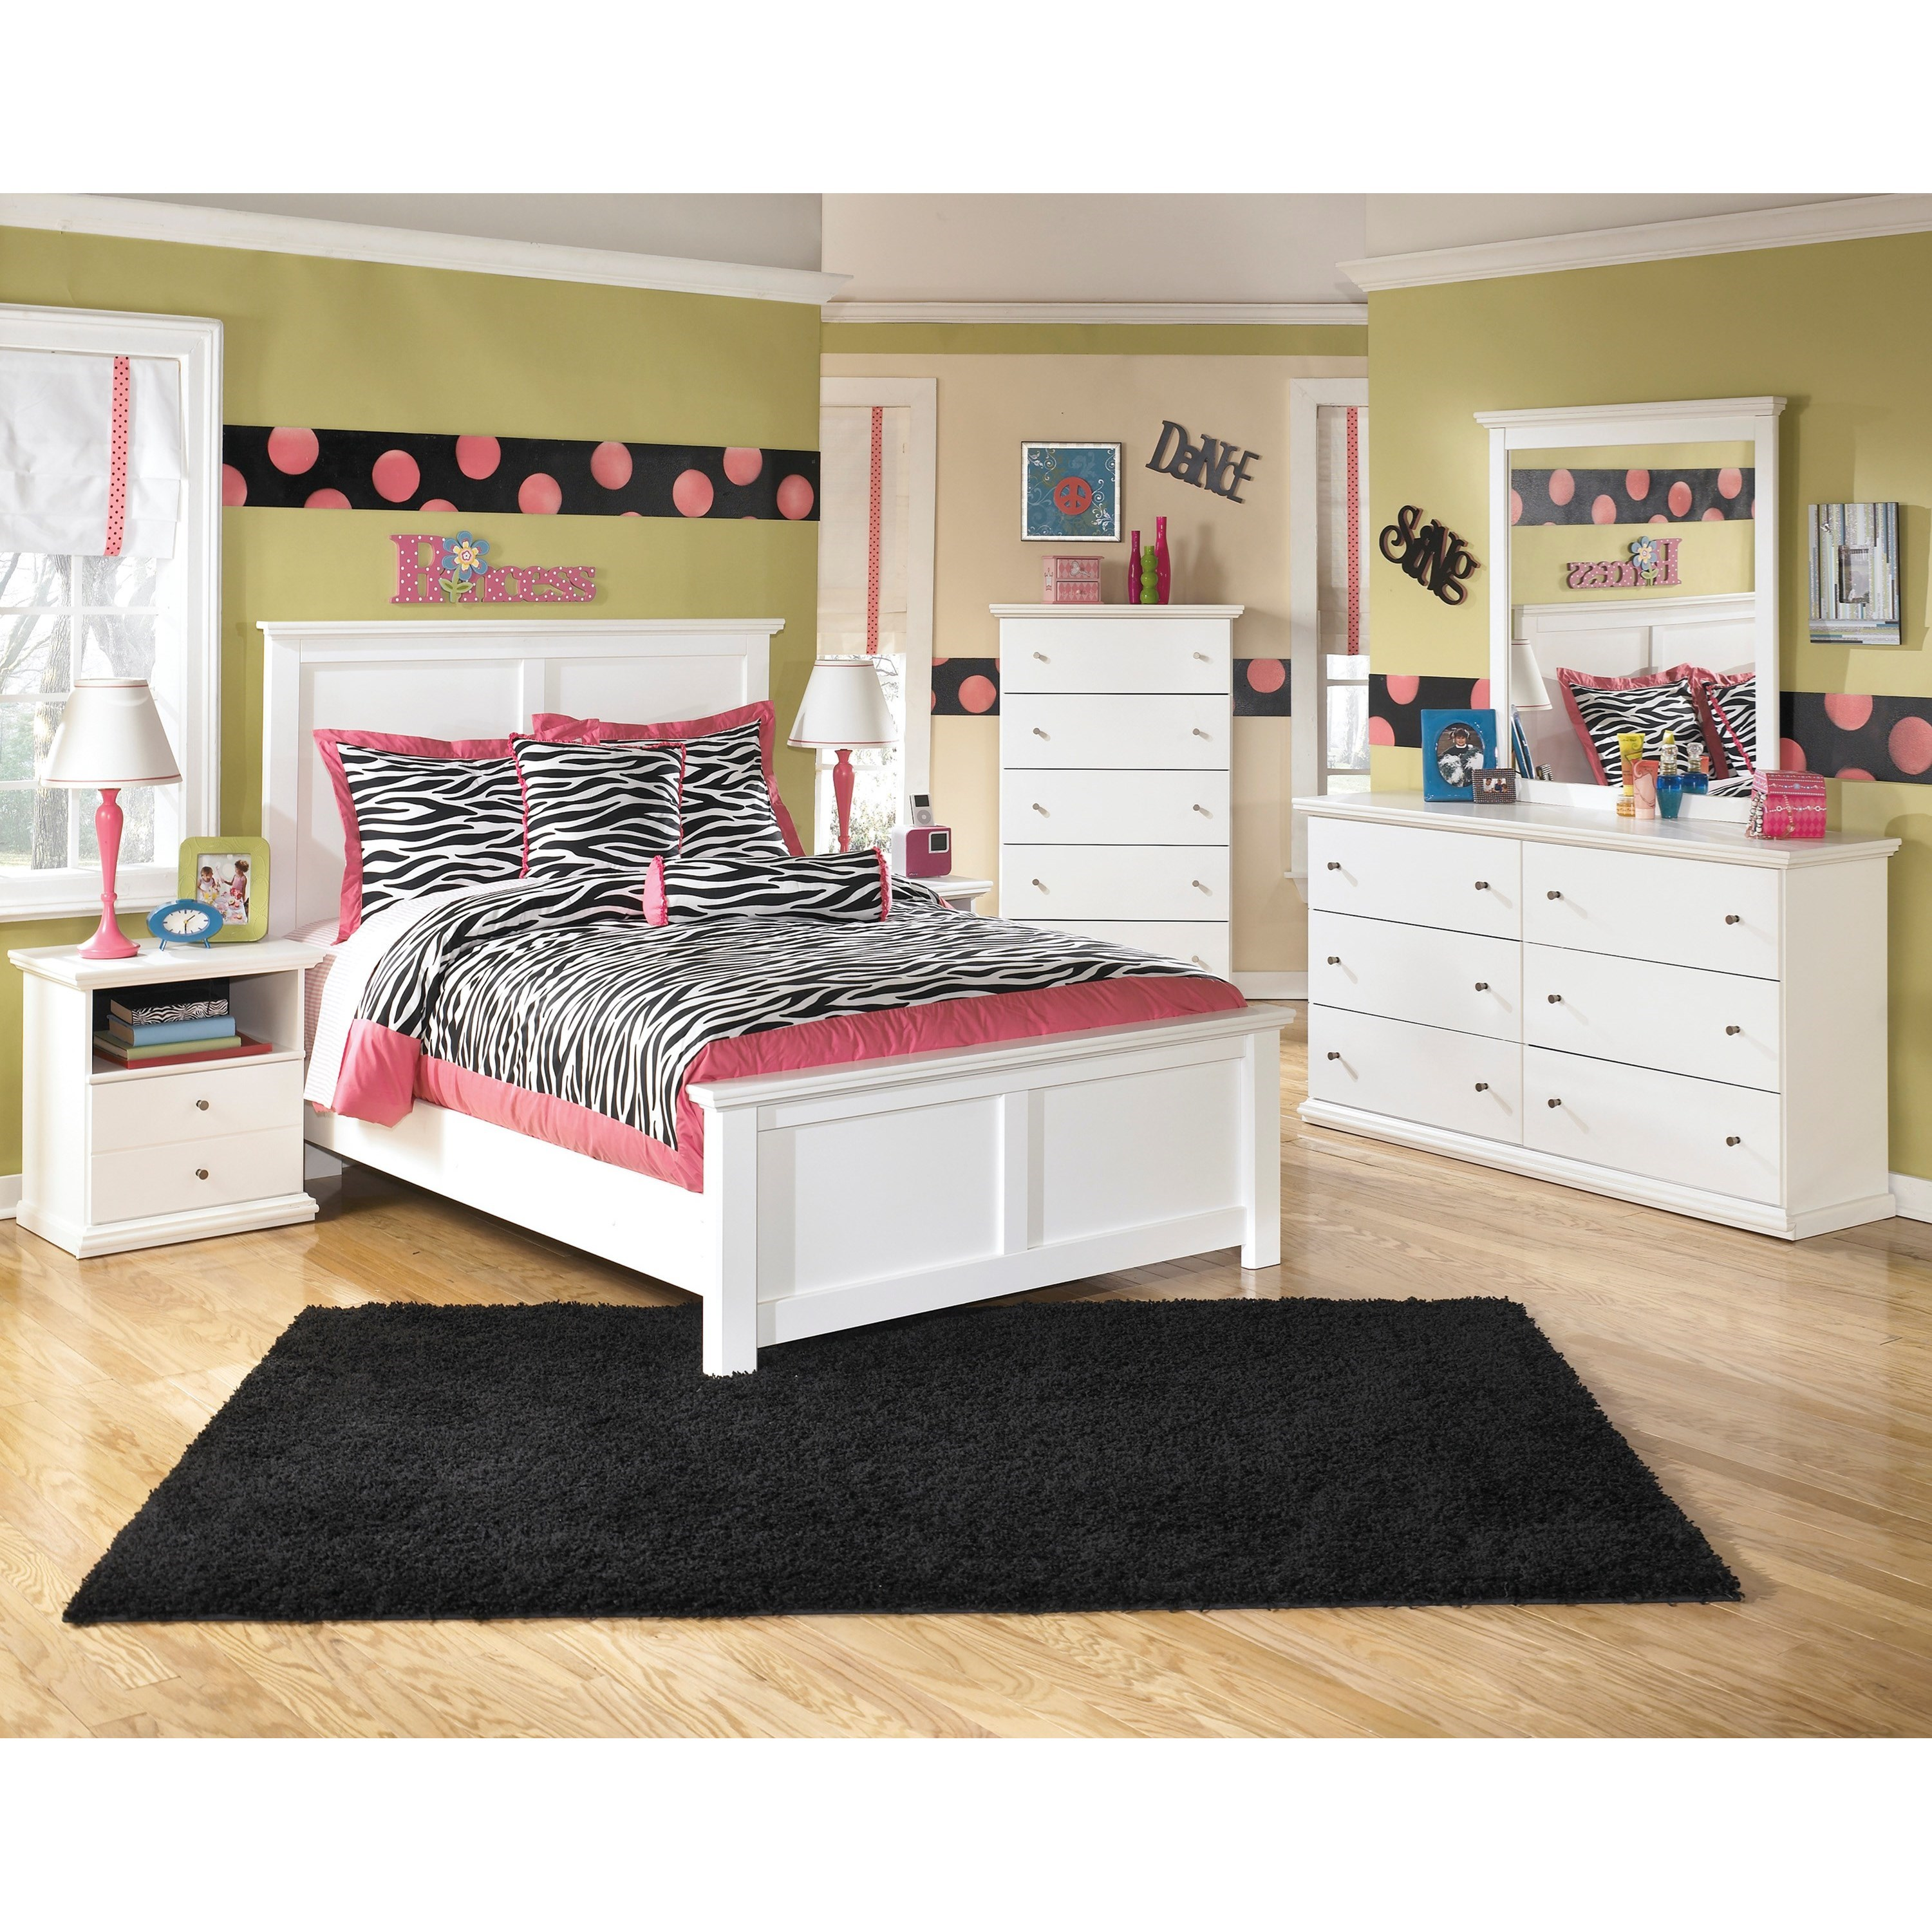 Signature design by ashley bostwick shoals full bedroom - Ashley furniture full bedroom sets ...